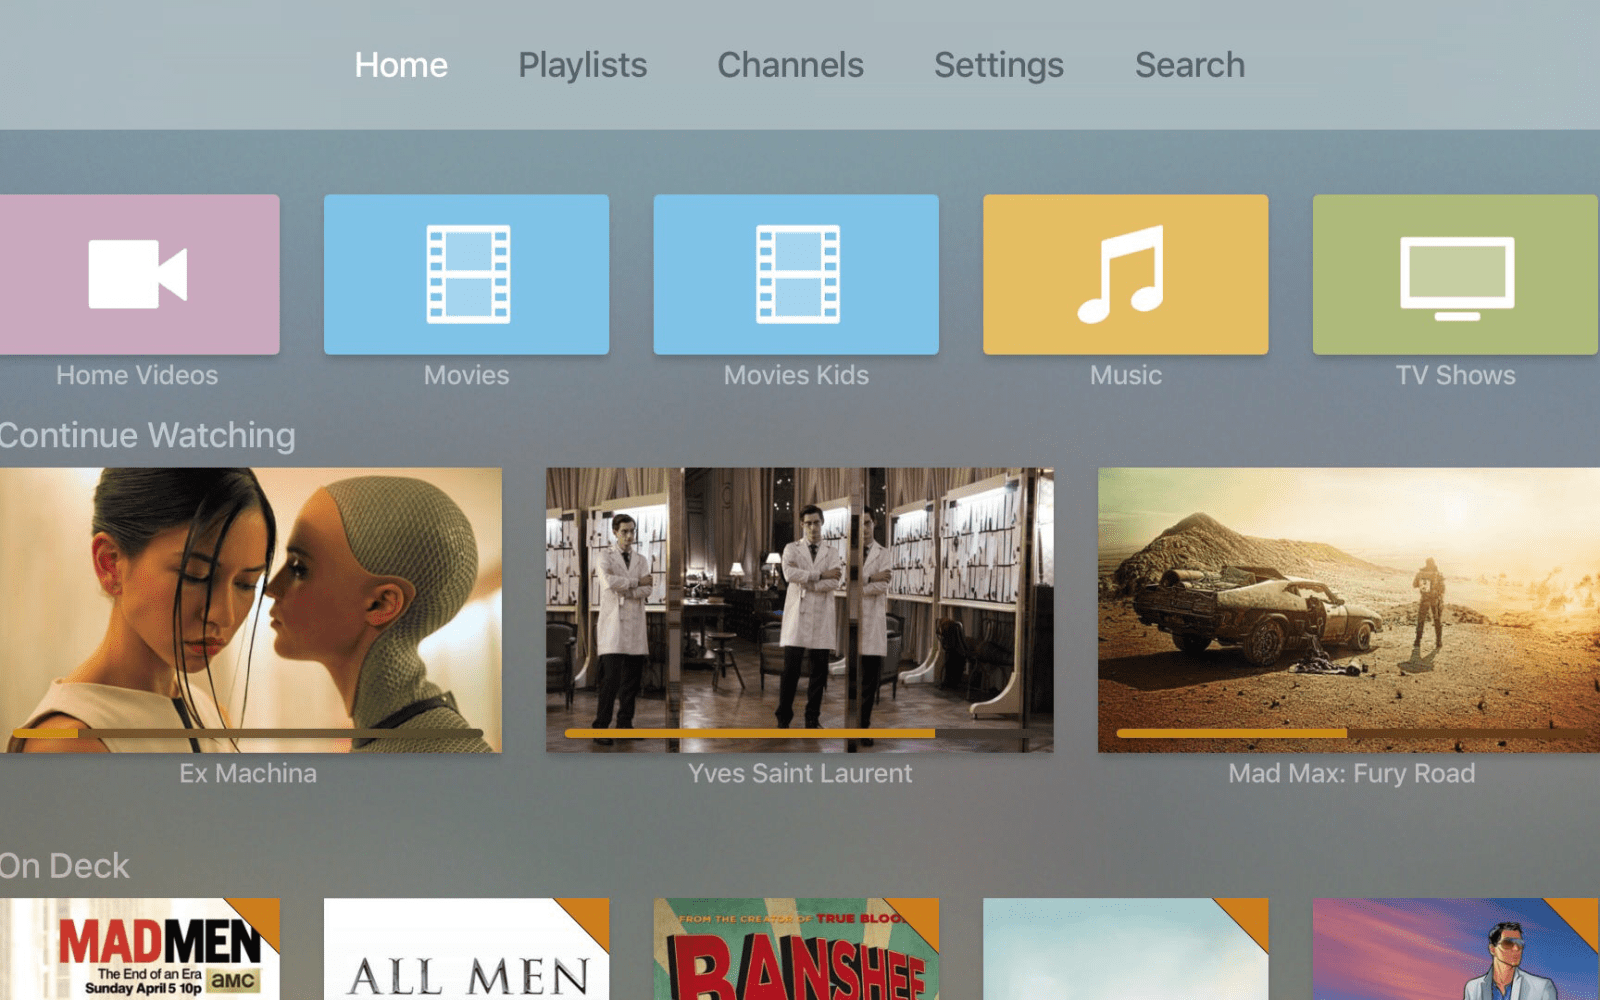 Official Plex app for Apple TV now available, offers local